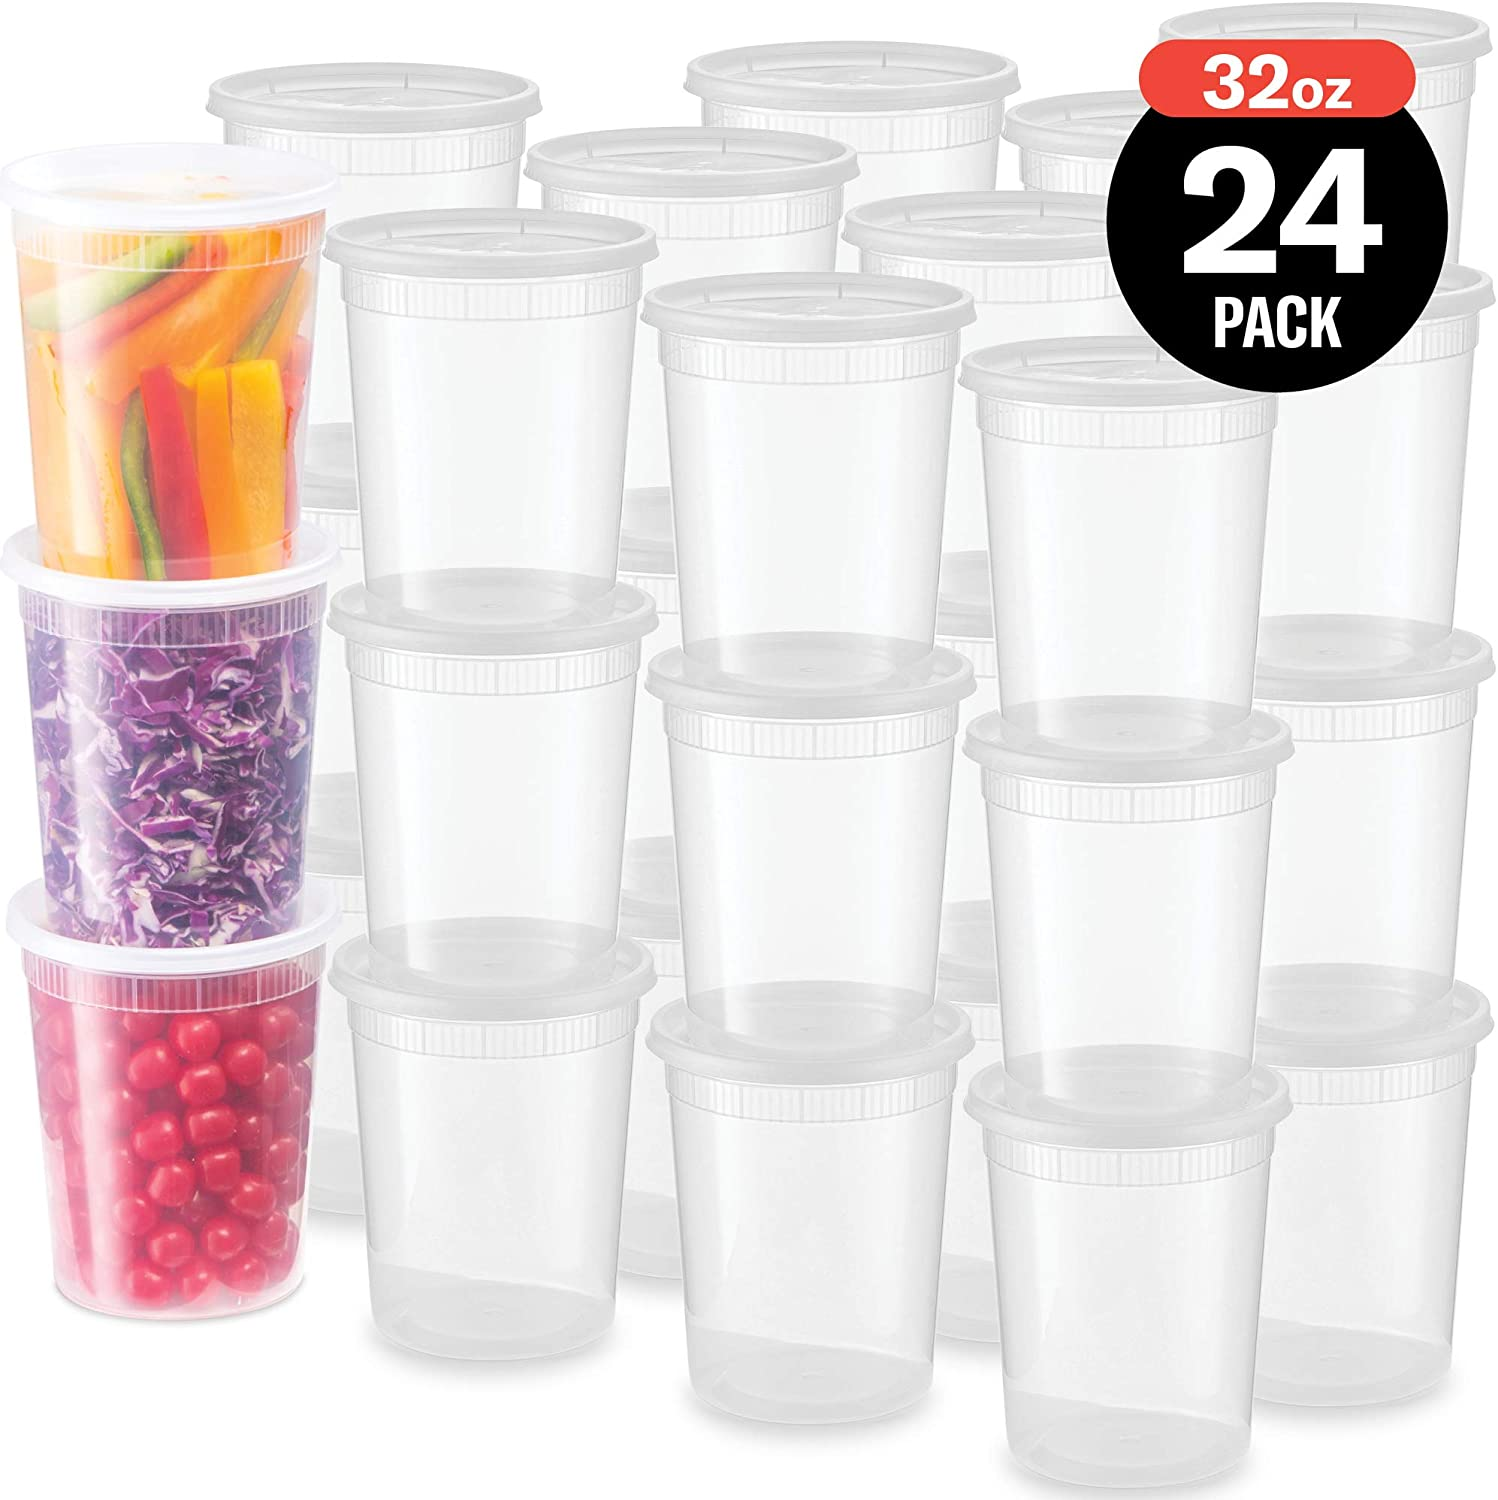 Plastic Deli Food Storage Containers With Leak-Proof Lids 24 Pack, 32 Oz | Microwaveable Airtight Container For Soups, Snacks, Meal Prep, Salad, Ice Cream | BPA-Free Kitchen & Restaurant Supplies…